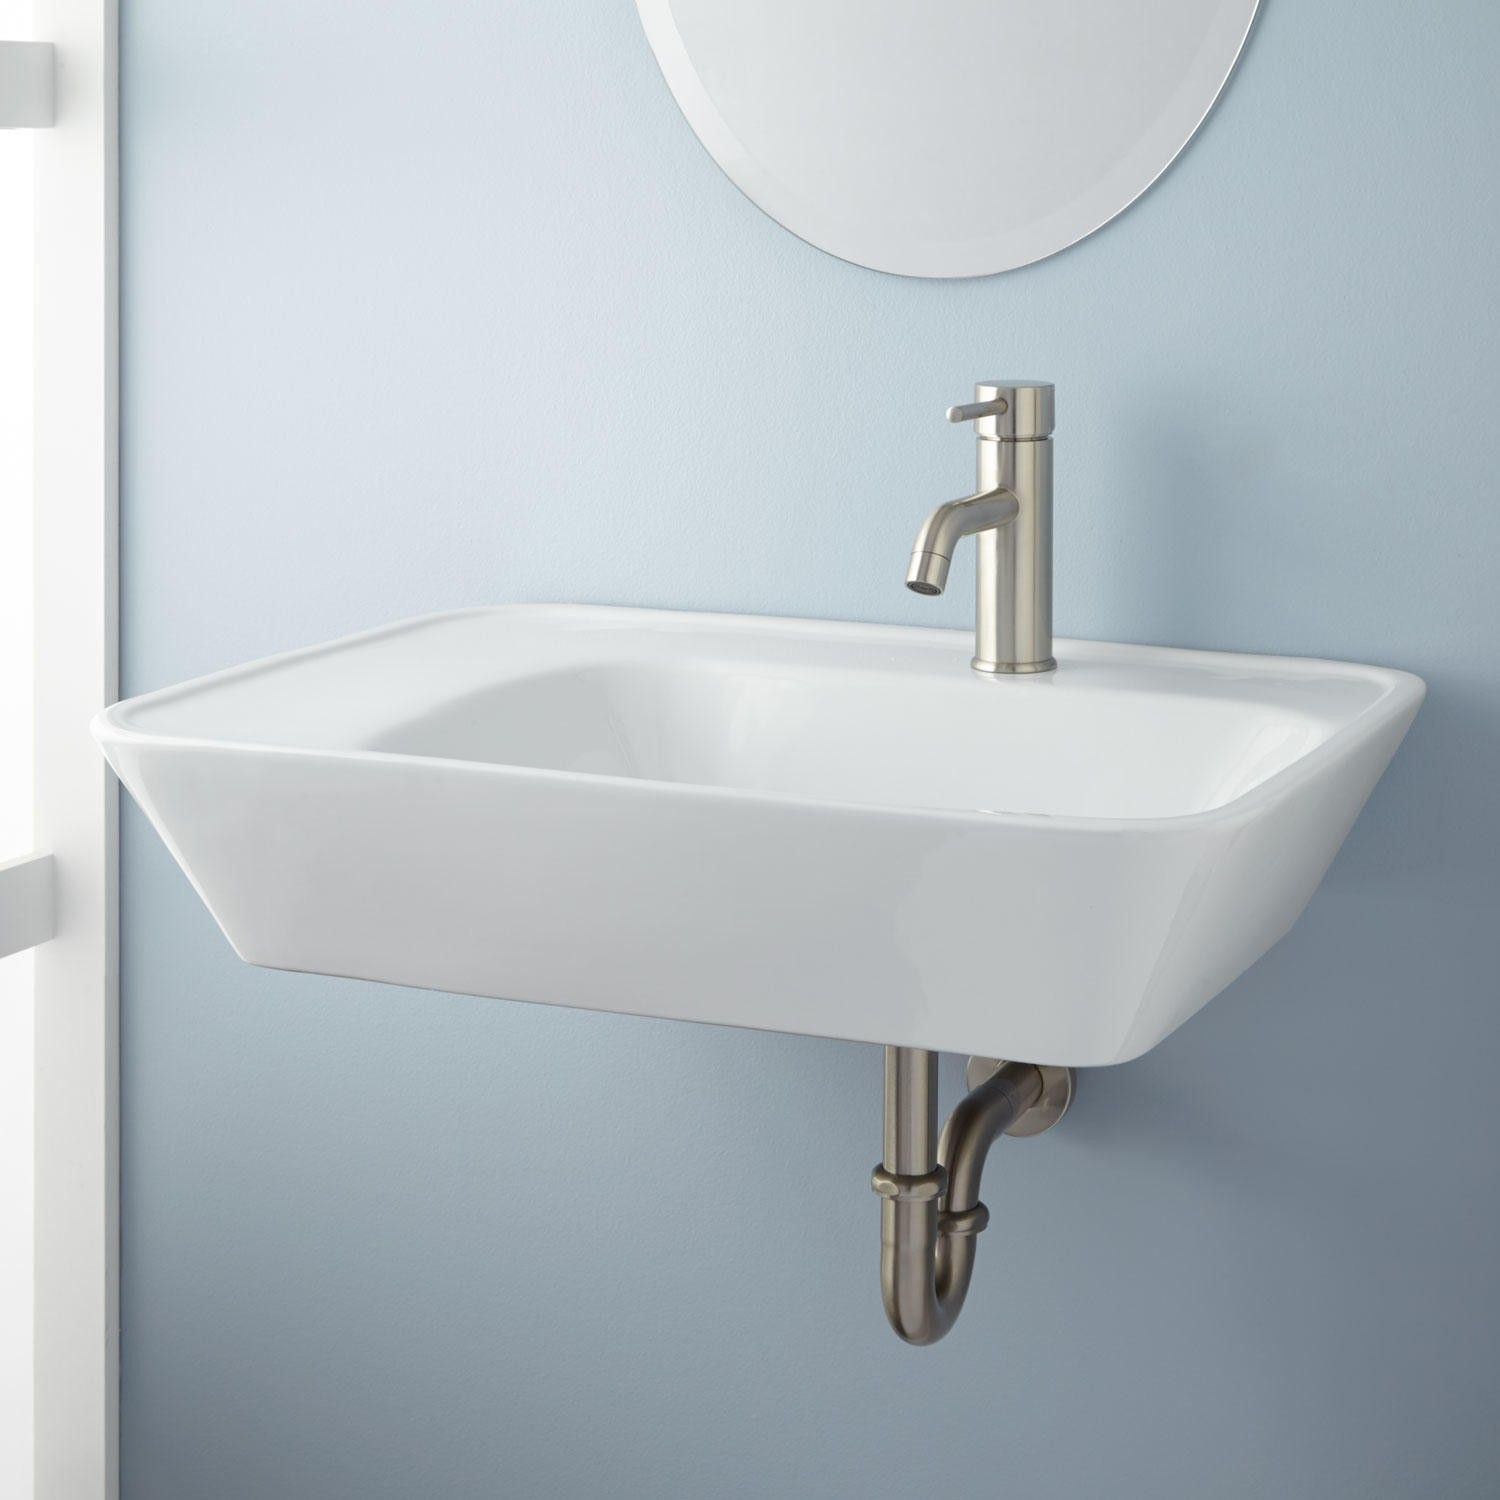 Reina Wall-Mount Bathroom Sink – Left Side Counter $199 | Bathroom ...